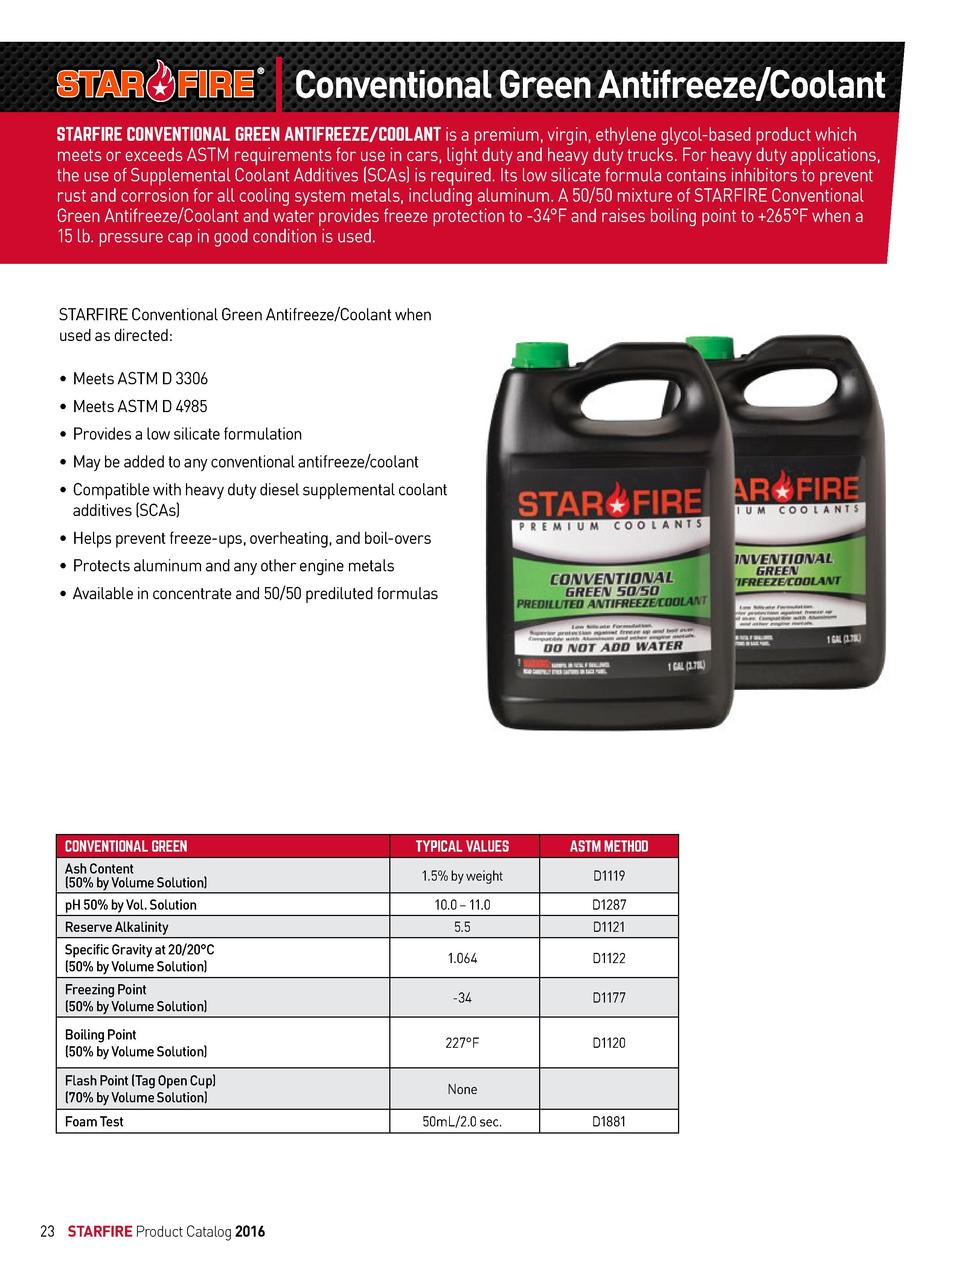 Conventional Green Antifreeze Coolant STARFIRE CONVENTIONAL GREEN ANTIFREEZE COOLANT is a premium, virgin, ethylene glycol...